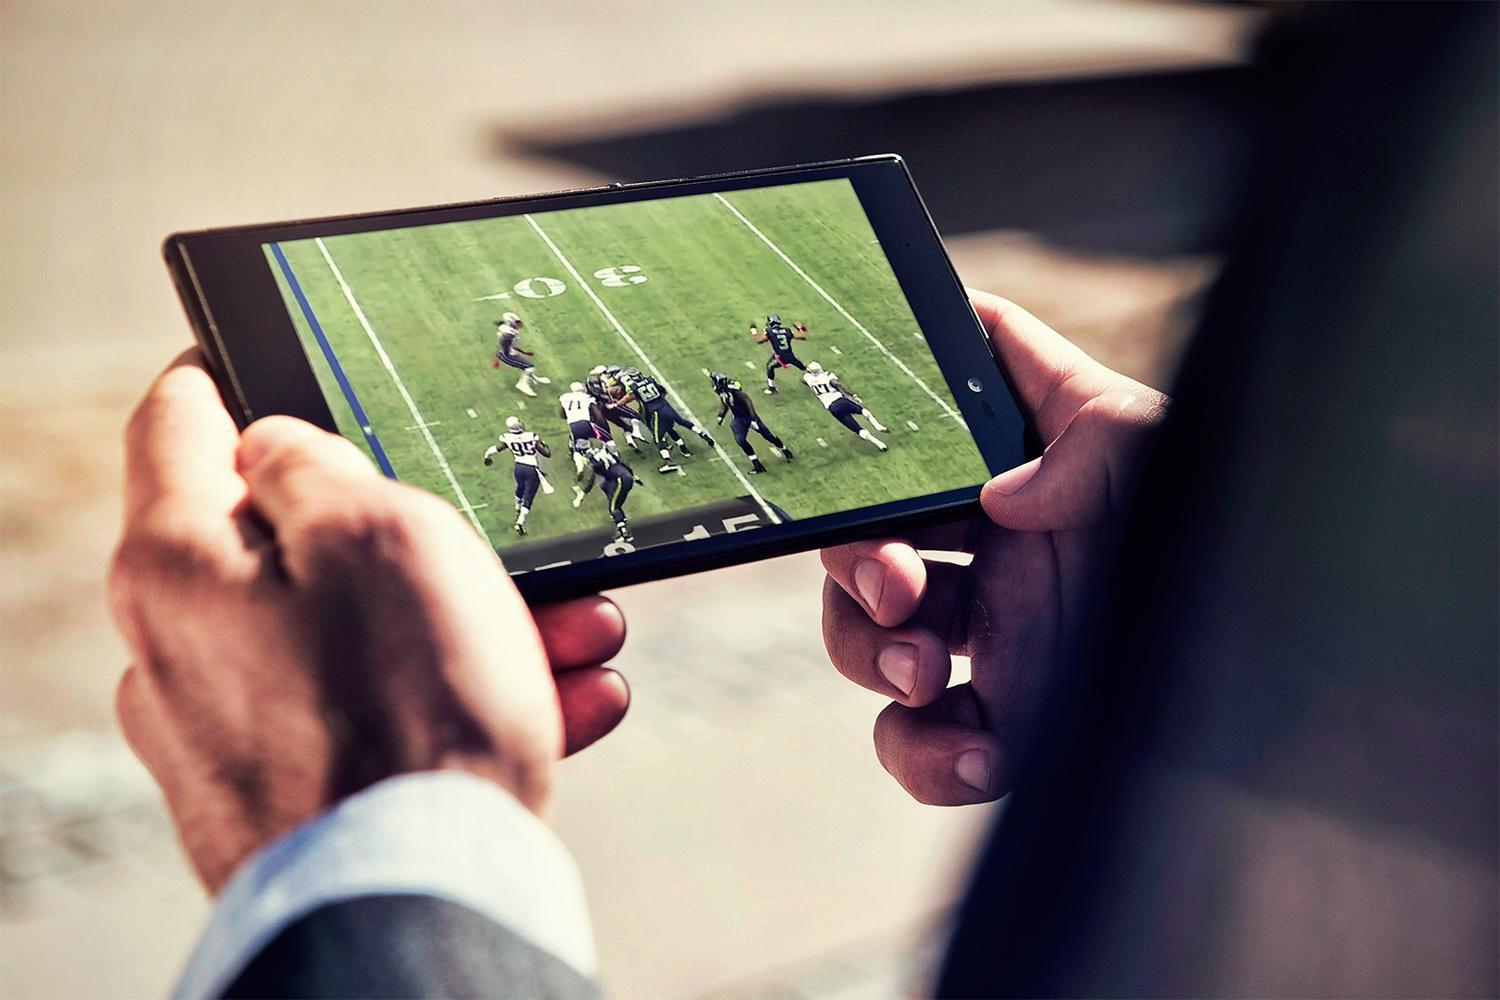 Tackle Super Bowl 50 with these super apps